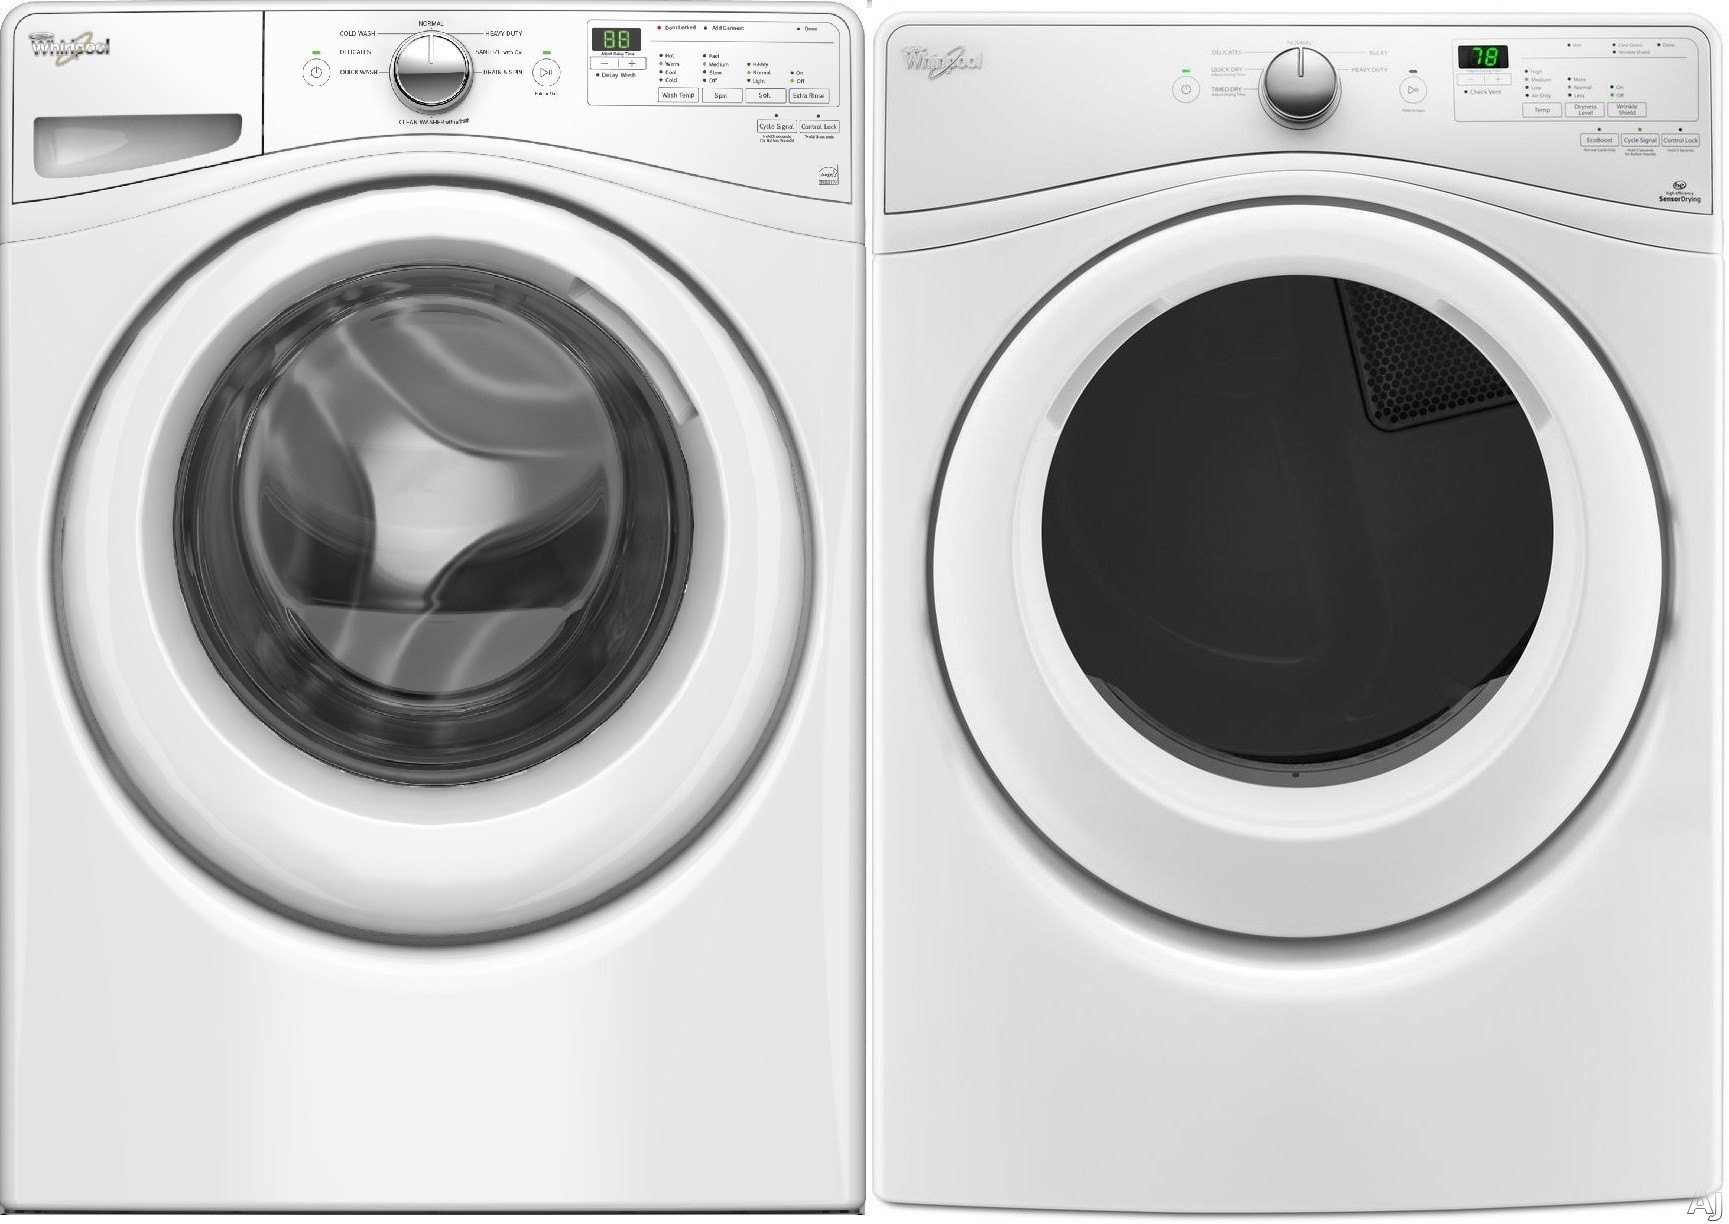 Whirlpool whi75fl whirlpool 75 series front load washer dryer pair - Whirlpool duet washer and dryer ...